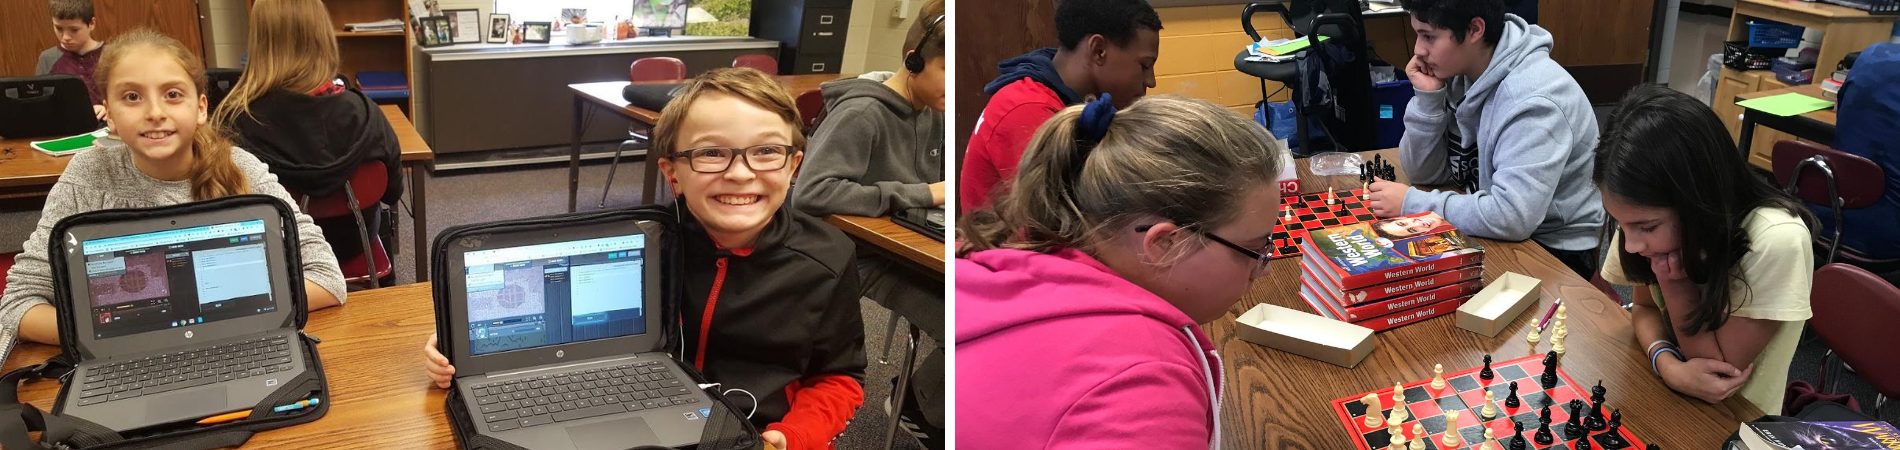 2 photo collage: Left: Students show off work on their Chromebooks. Right: Students compete during chess club.